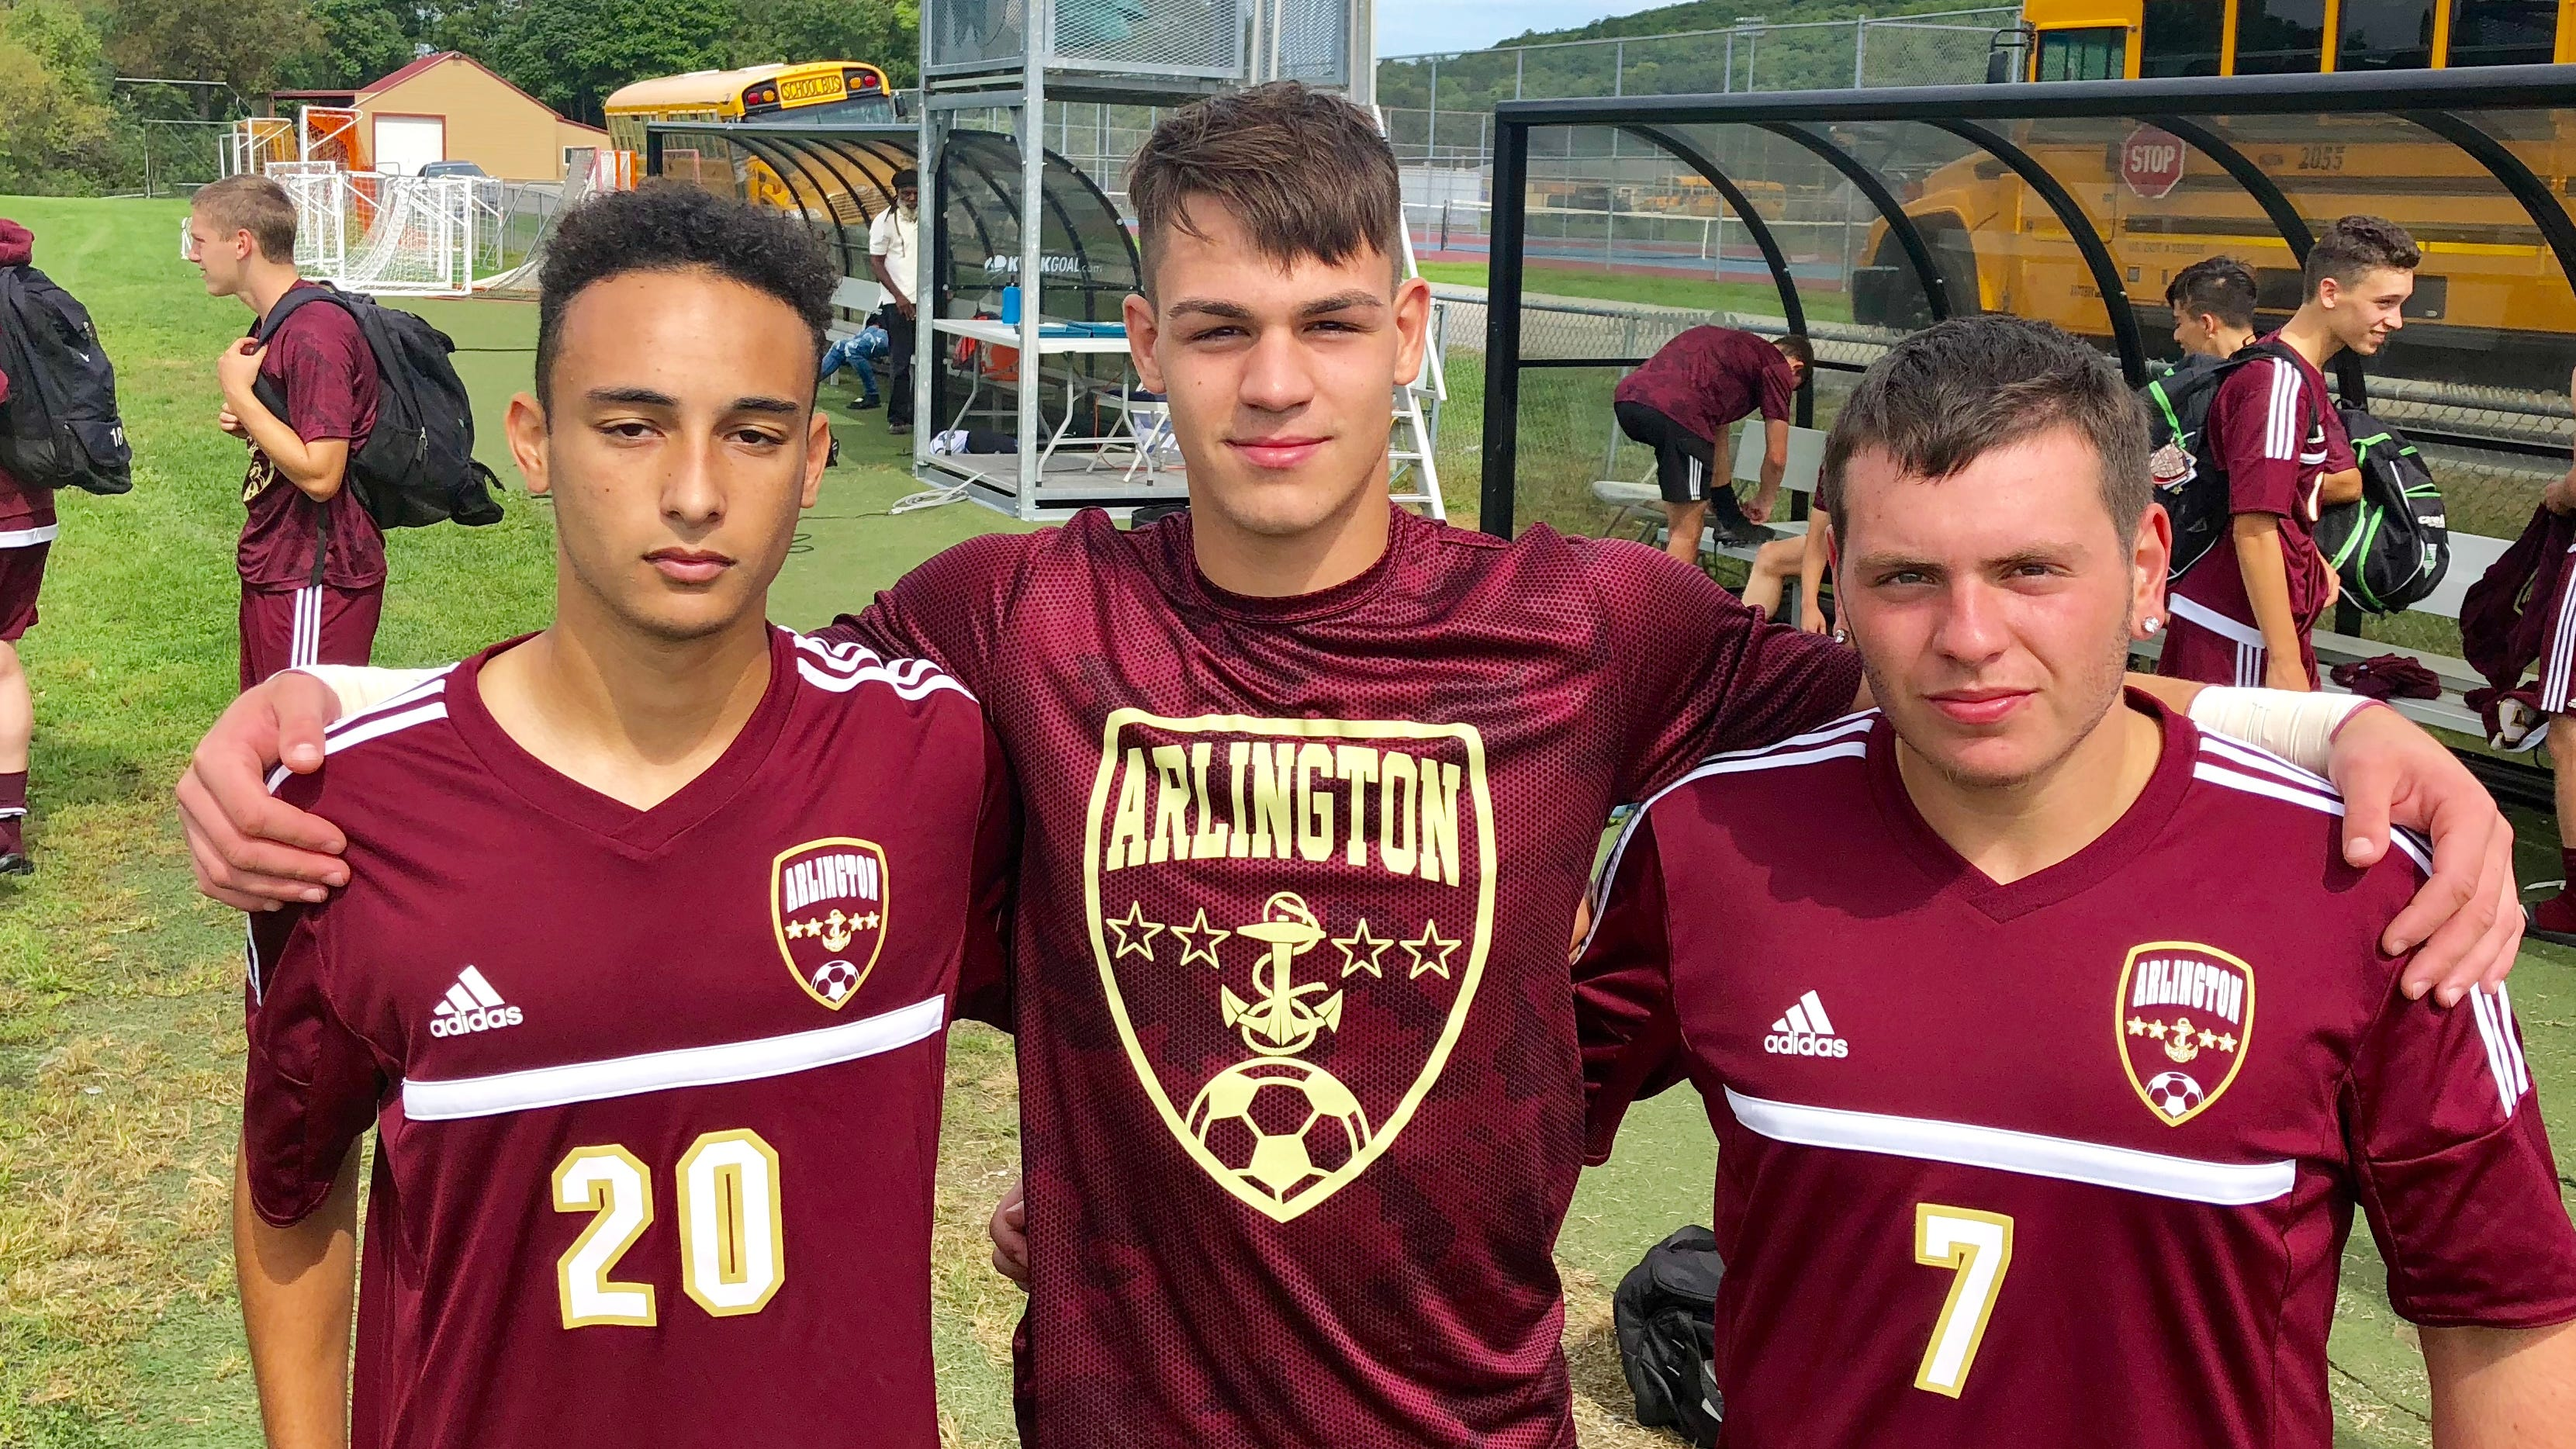 Arlington boys soccer teammates pose for a photo after beating rival Ketcham on Saturday. From left: Nick Espeut, Kevin Klausz and Frankie Colantuono.